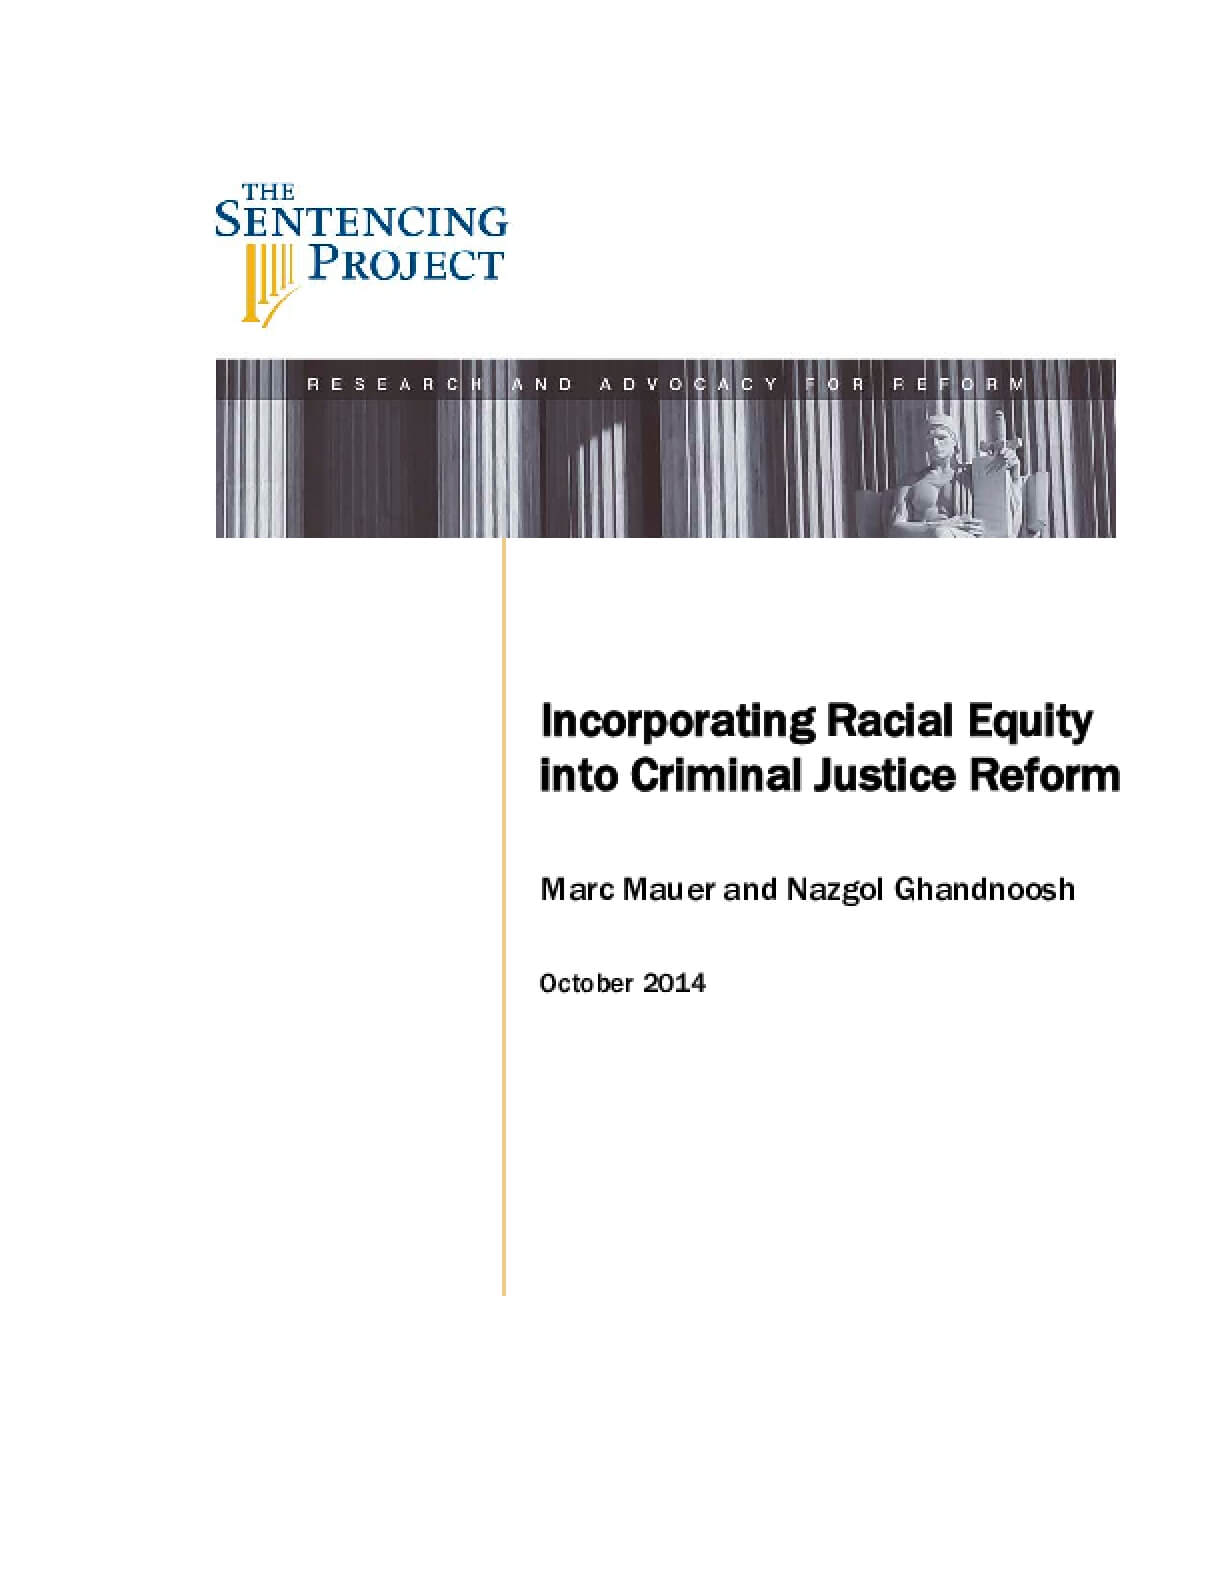 Incorporating Racial Equity into Criminal Justice Reform